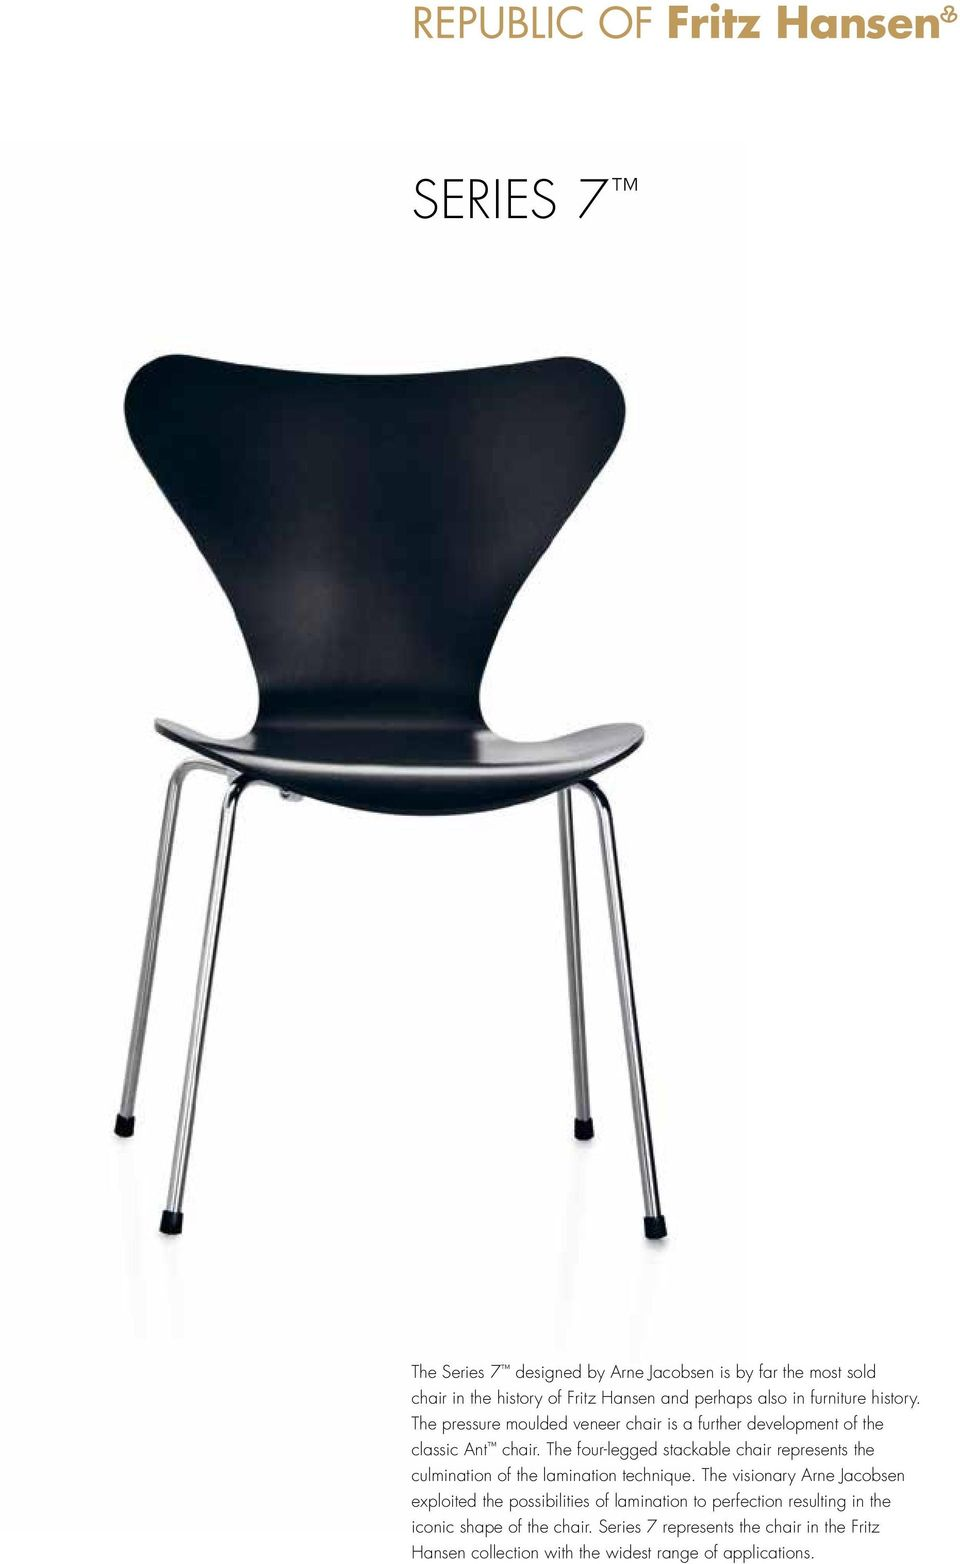 The four-legged stackable chair represents the culmination of the lamination technique.